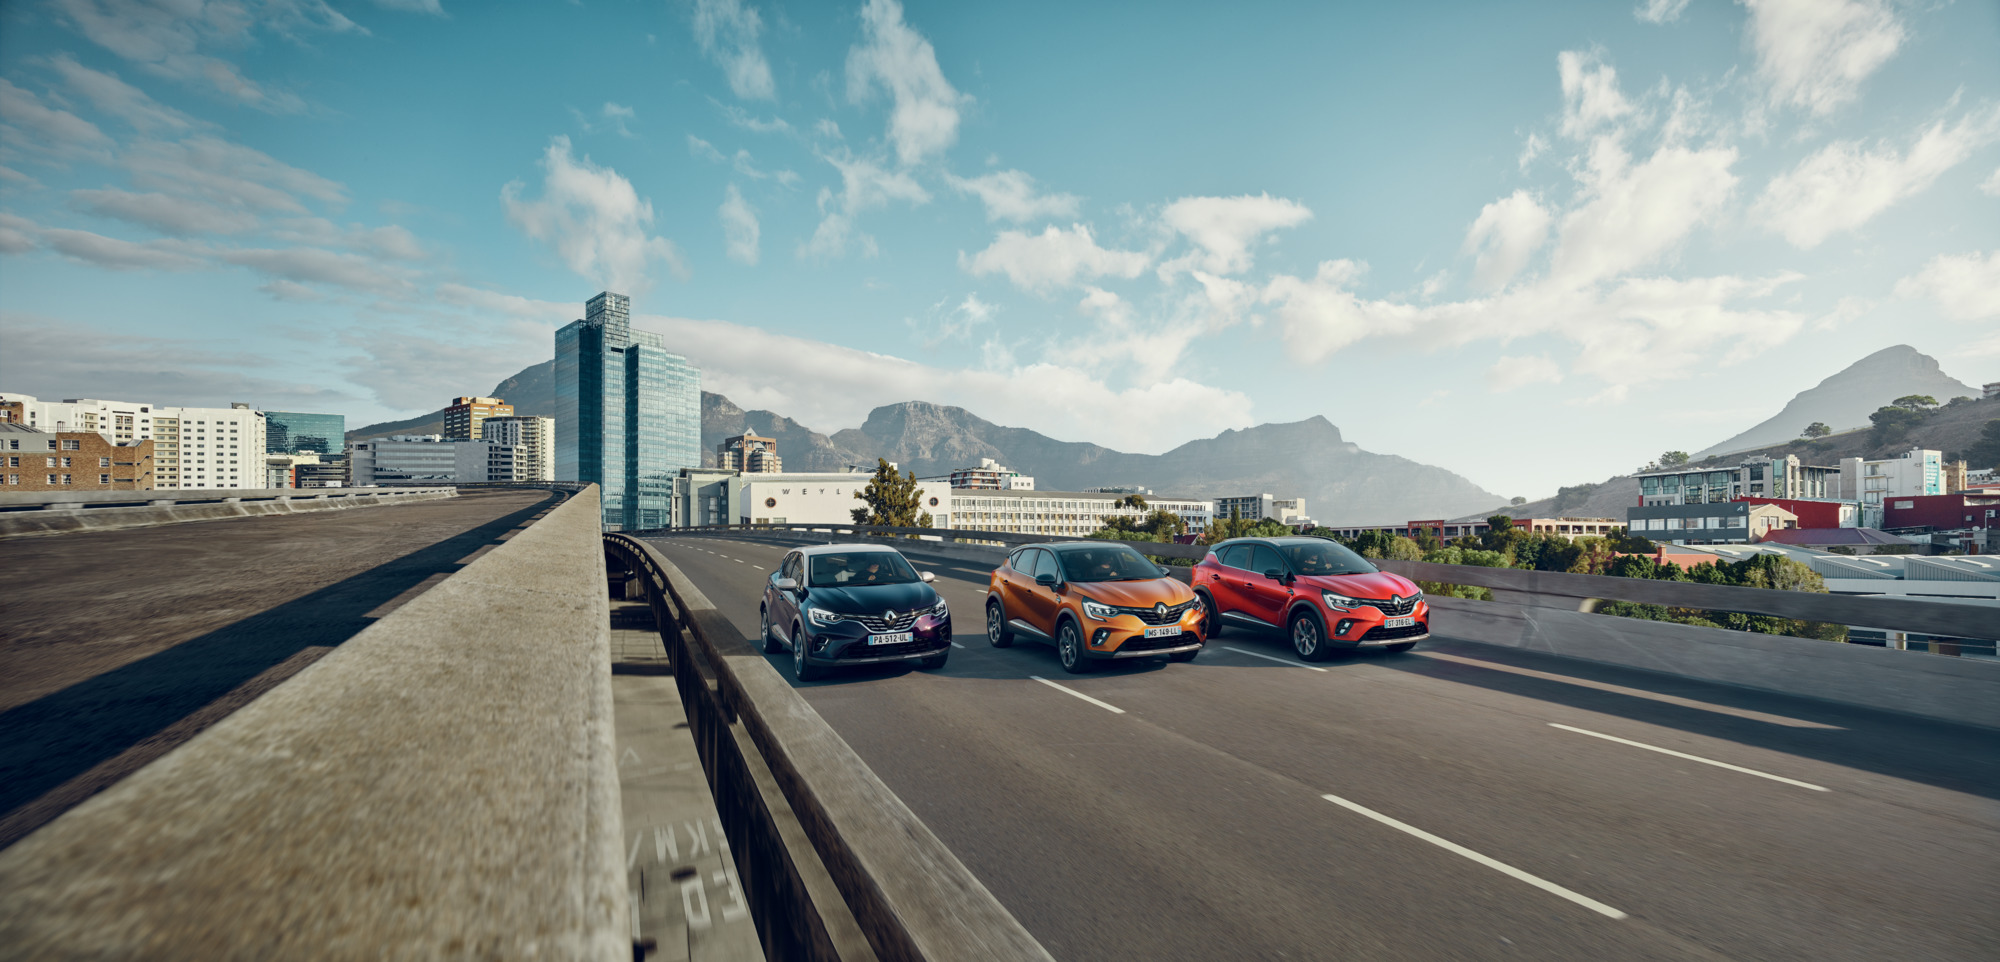 ALL-NEW RENAULT CAPTUR: PROVIDING THE BEST IN CUSTOMISATION